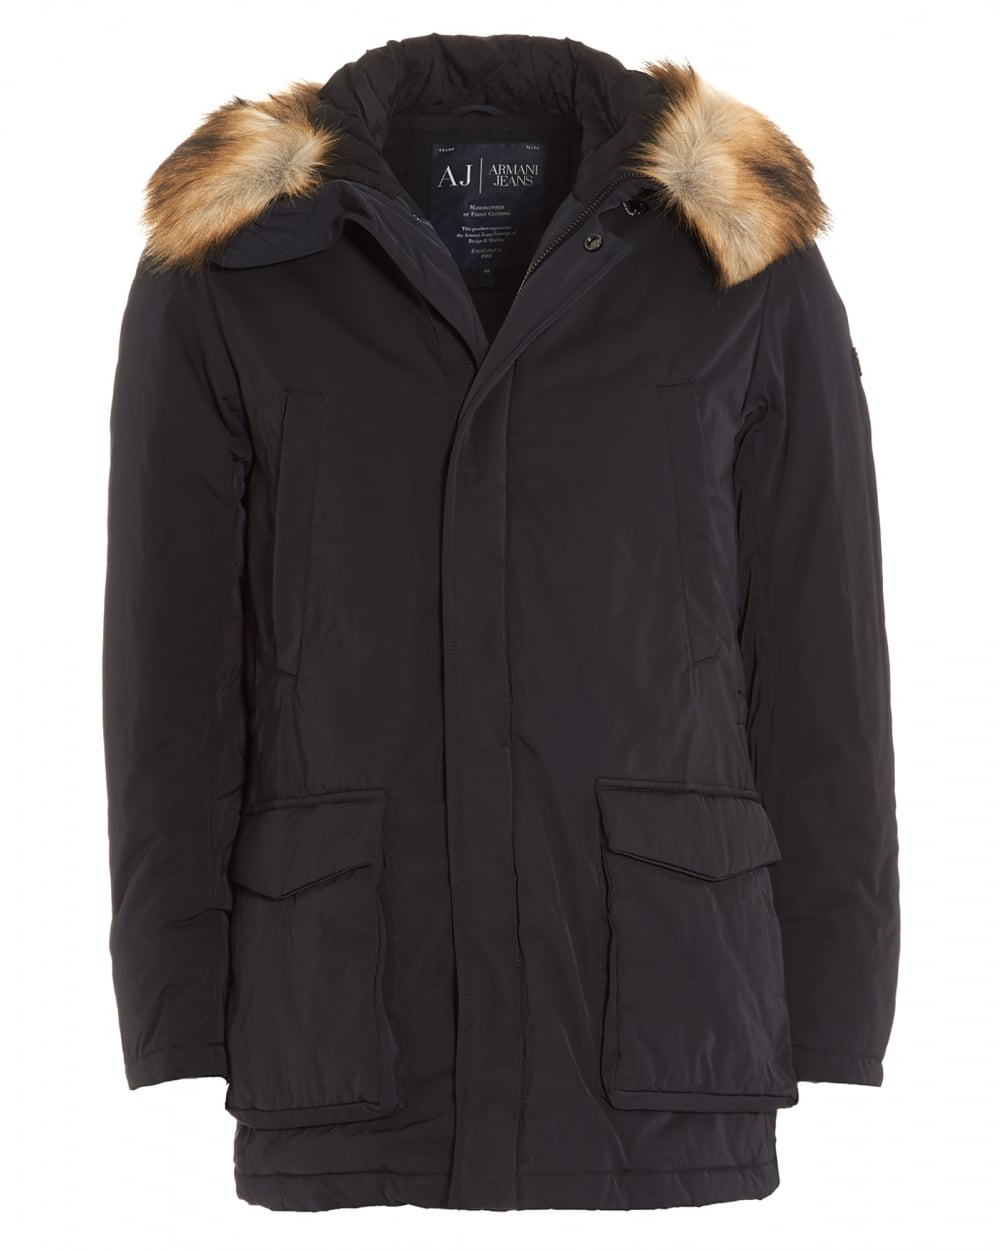 Armani Jeans Mens Coat Faux Fur Waterproof Navy Blue Parka Jacket